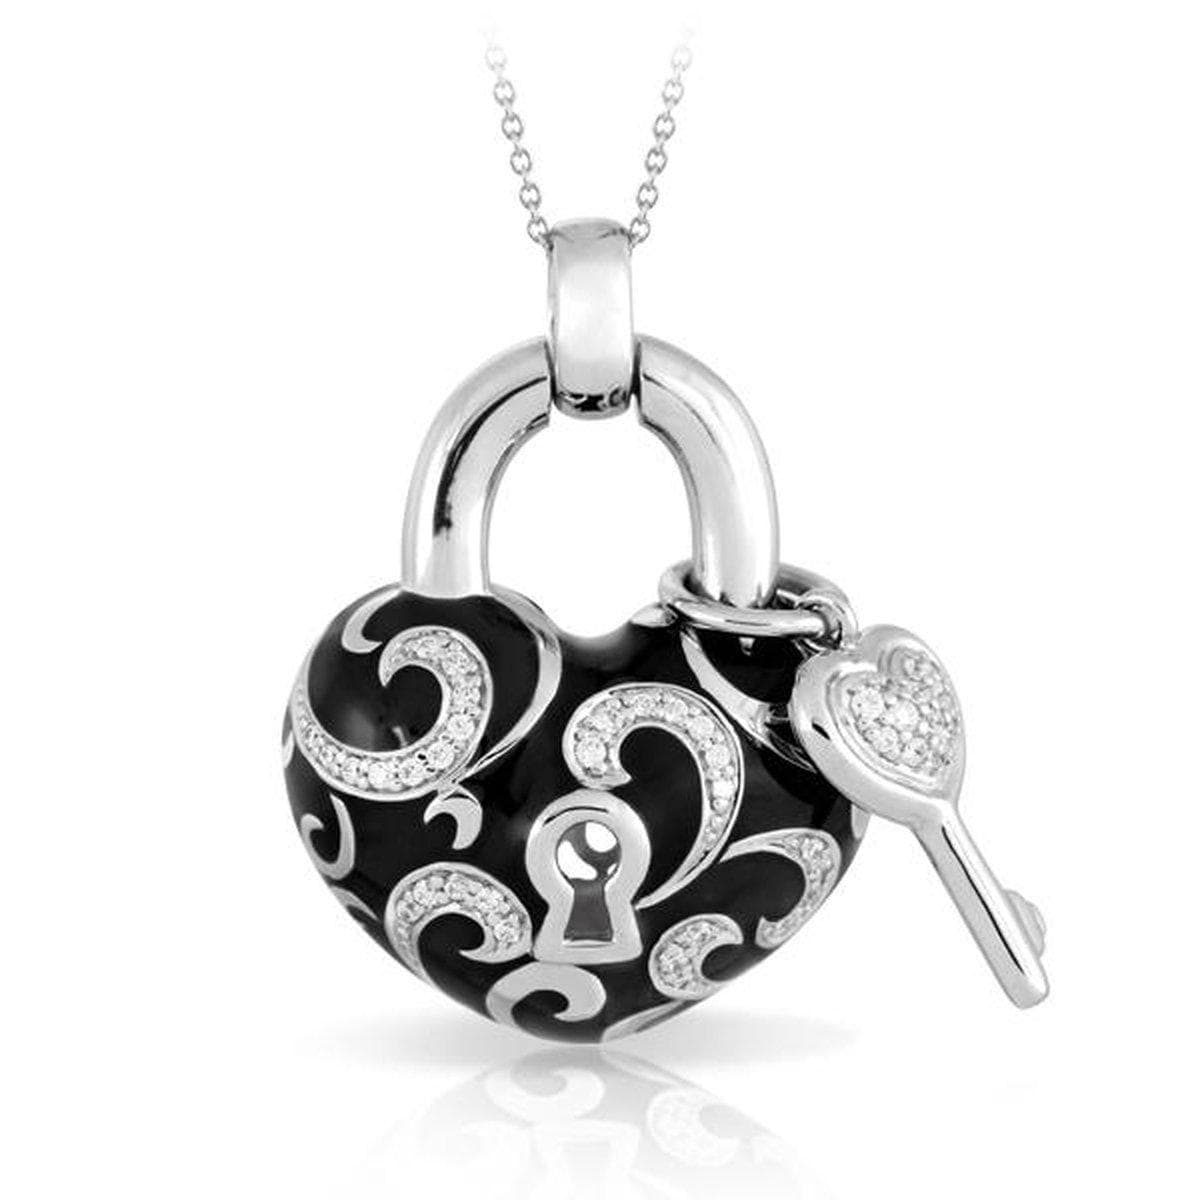 Key to My Heart Black Pendant - Belle Etoile